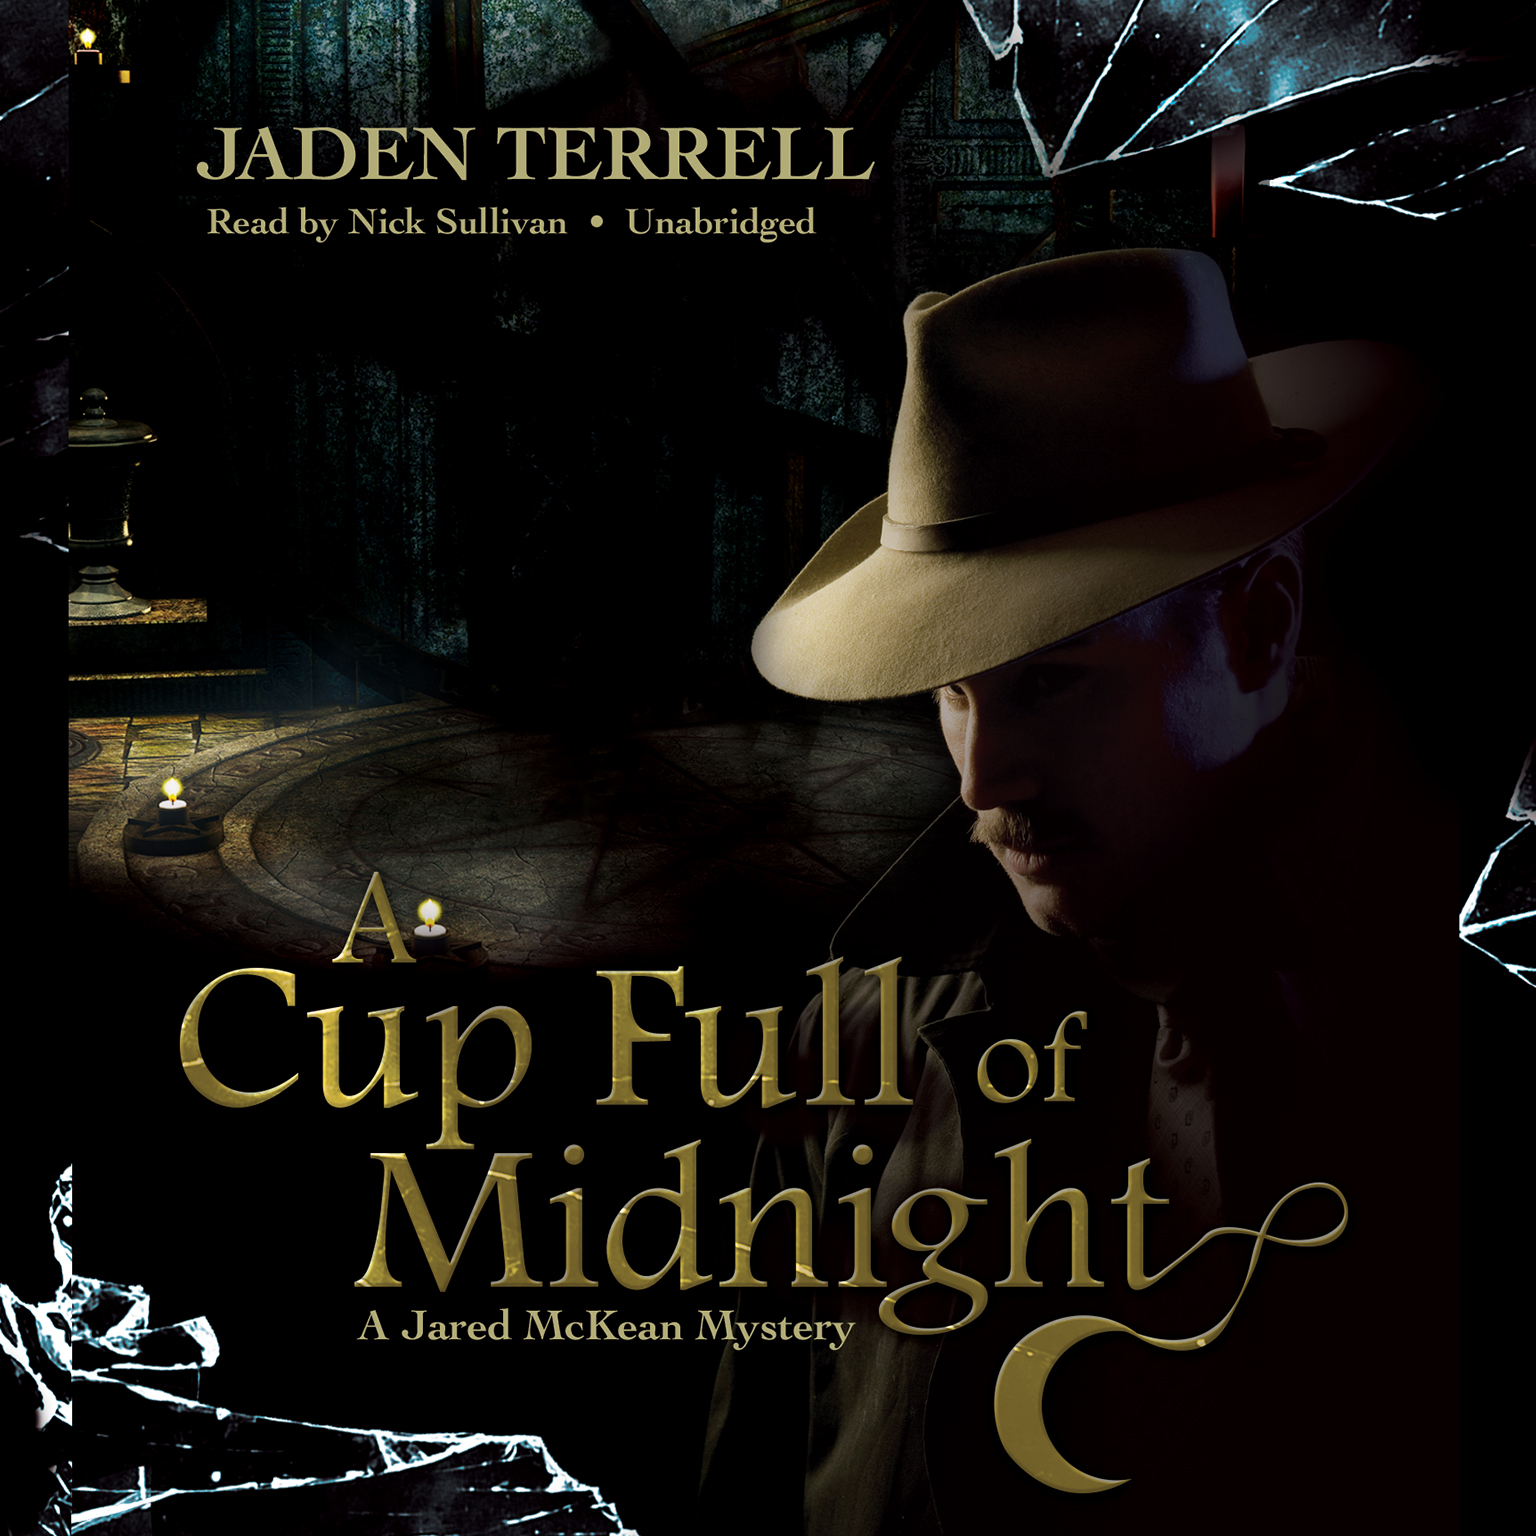 Printable A Cup Full of Midnight: A Jared McKean Mystery Audiobook Cover Art